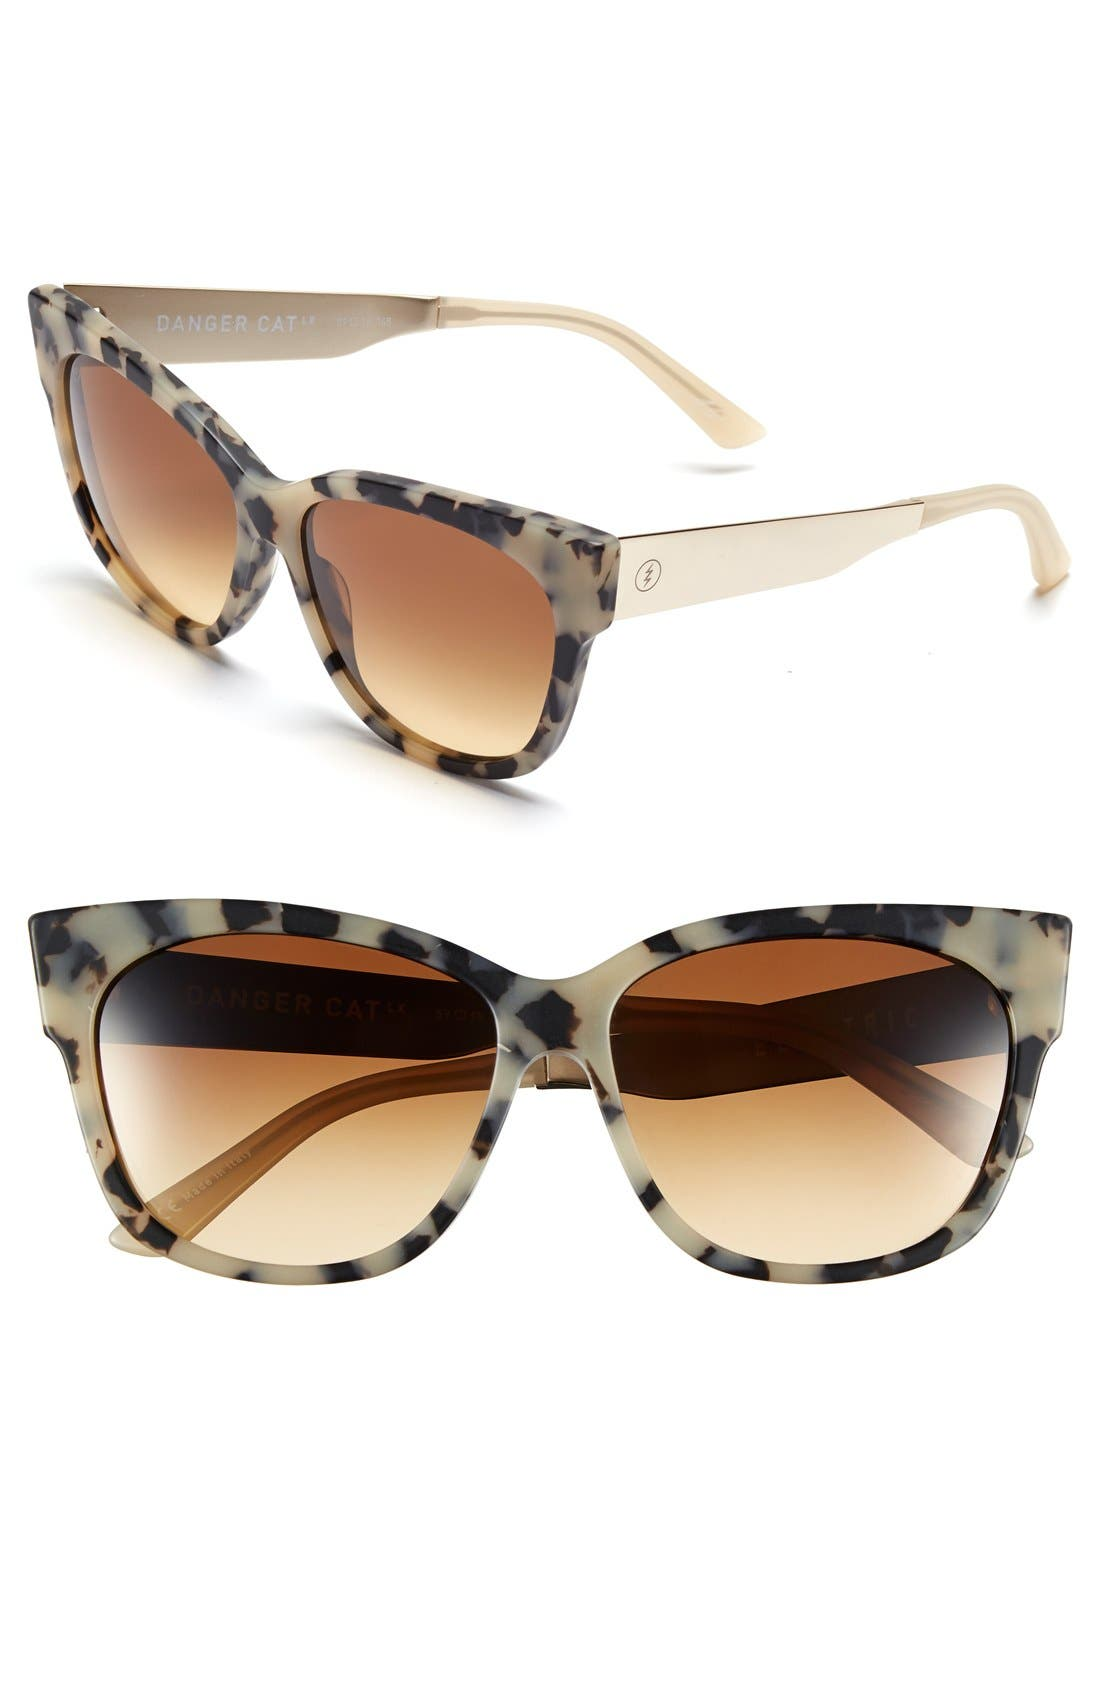 'Danger Cat LX' 59mm Cat Eye Sunglasses,                         Main,                         color, Matte Nude Tort/ Bronze